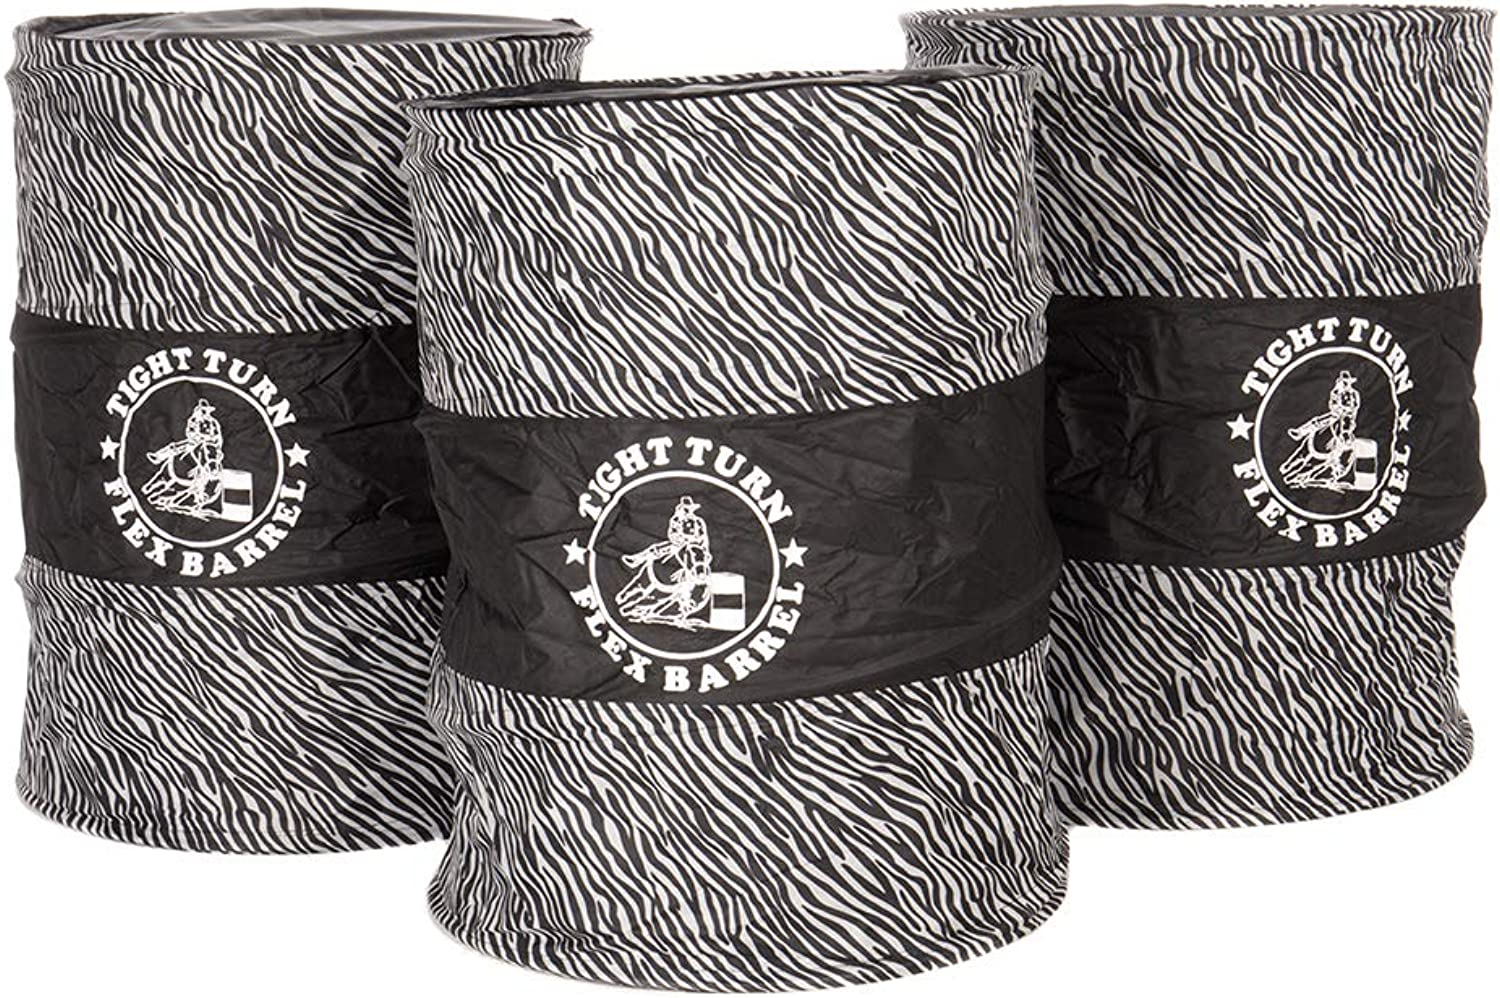 New Barrel Racing Tight Turn Pop Up Flex Flexible 3 Piece Set Zebra Rwb Usa Flag